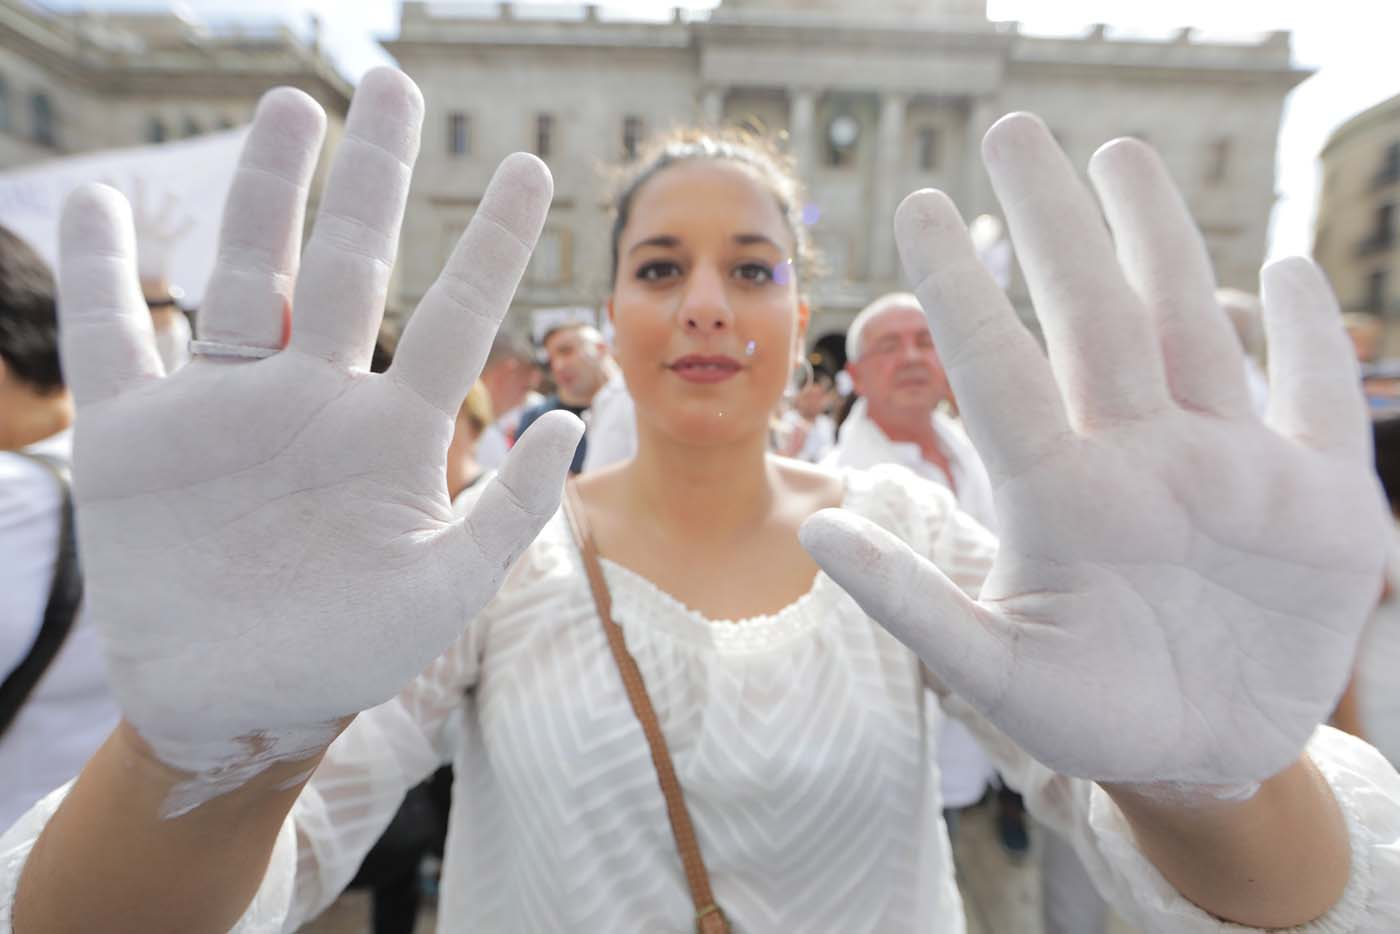 A woman shows her white painted hands duing a demonstration in favour of dialogue in a square in Barcelona, Spain, October 7, 2017 REUTERS/Eric Gaillard